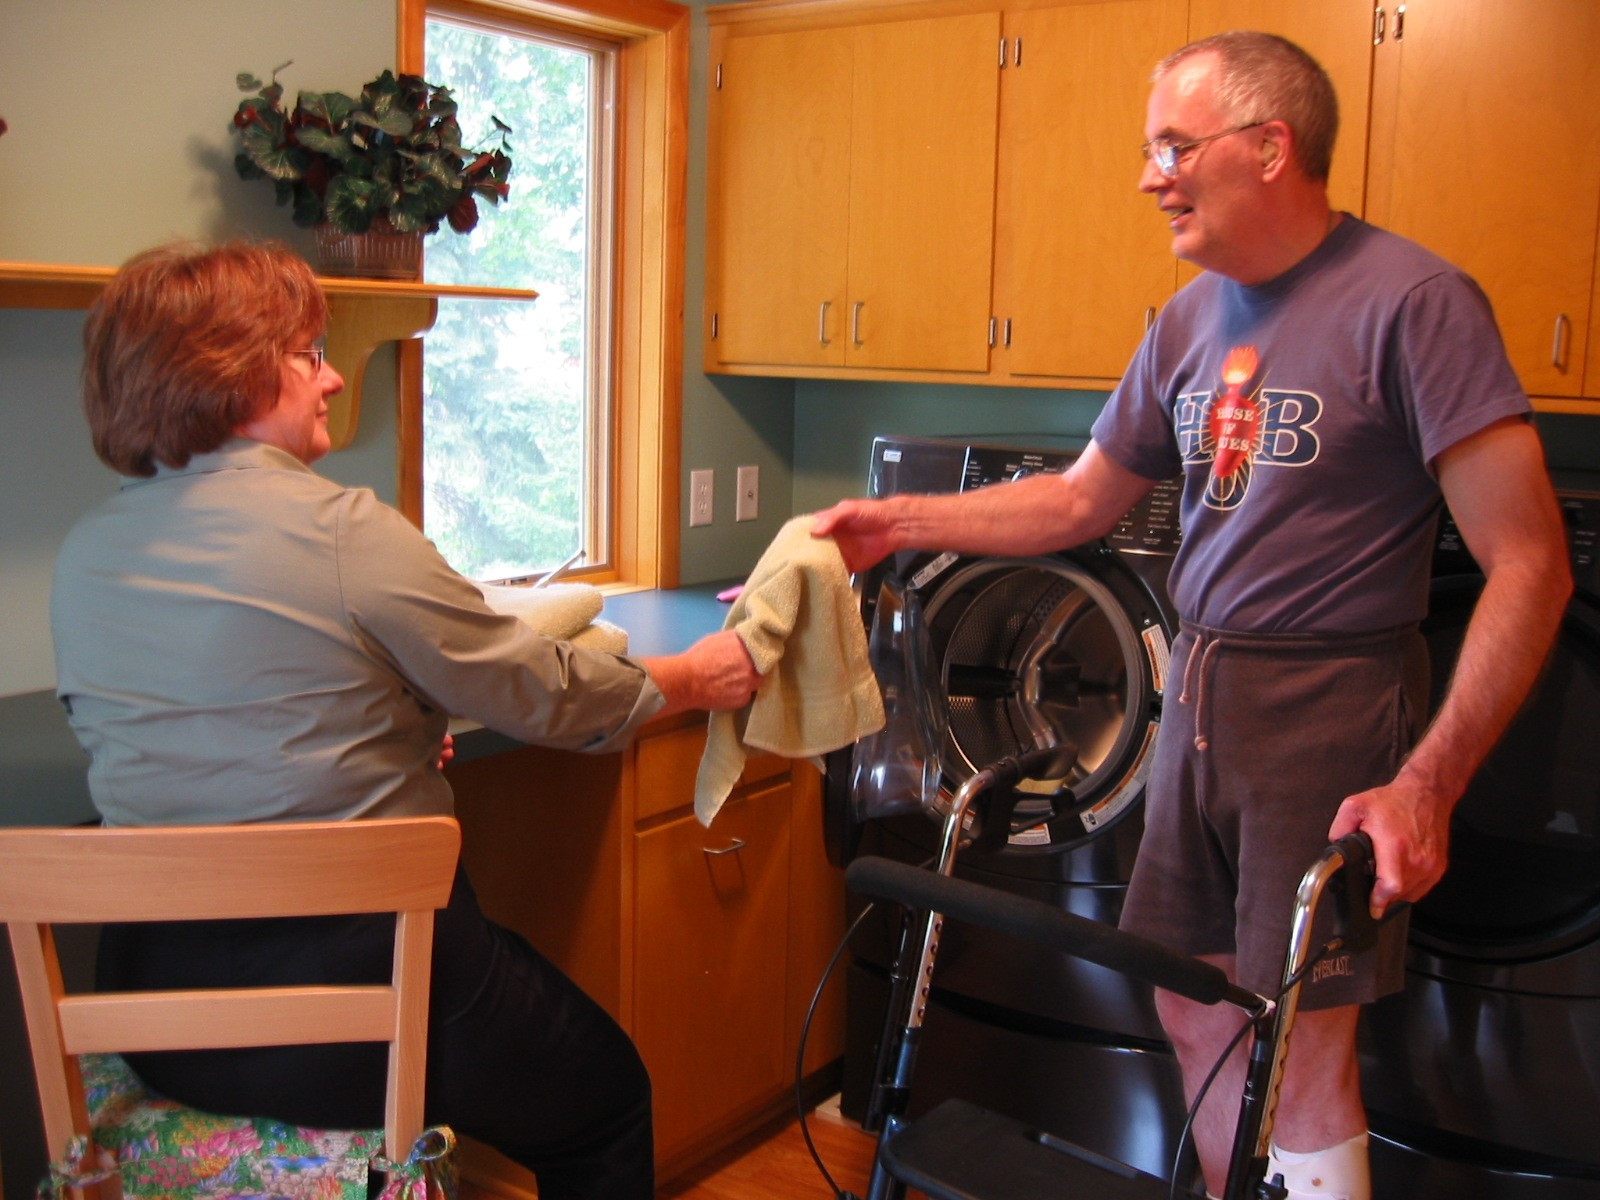 Mike and Ann doing laundry while in a seated and standing positions.